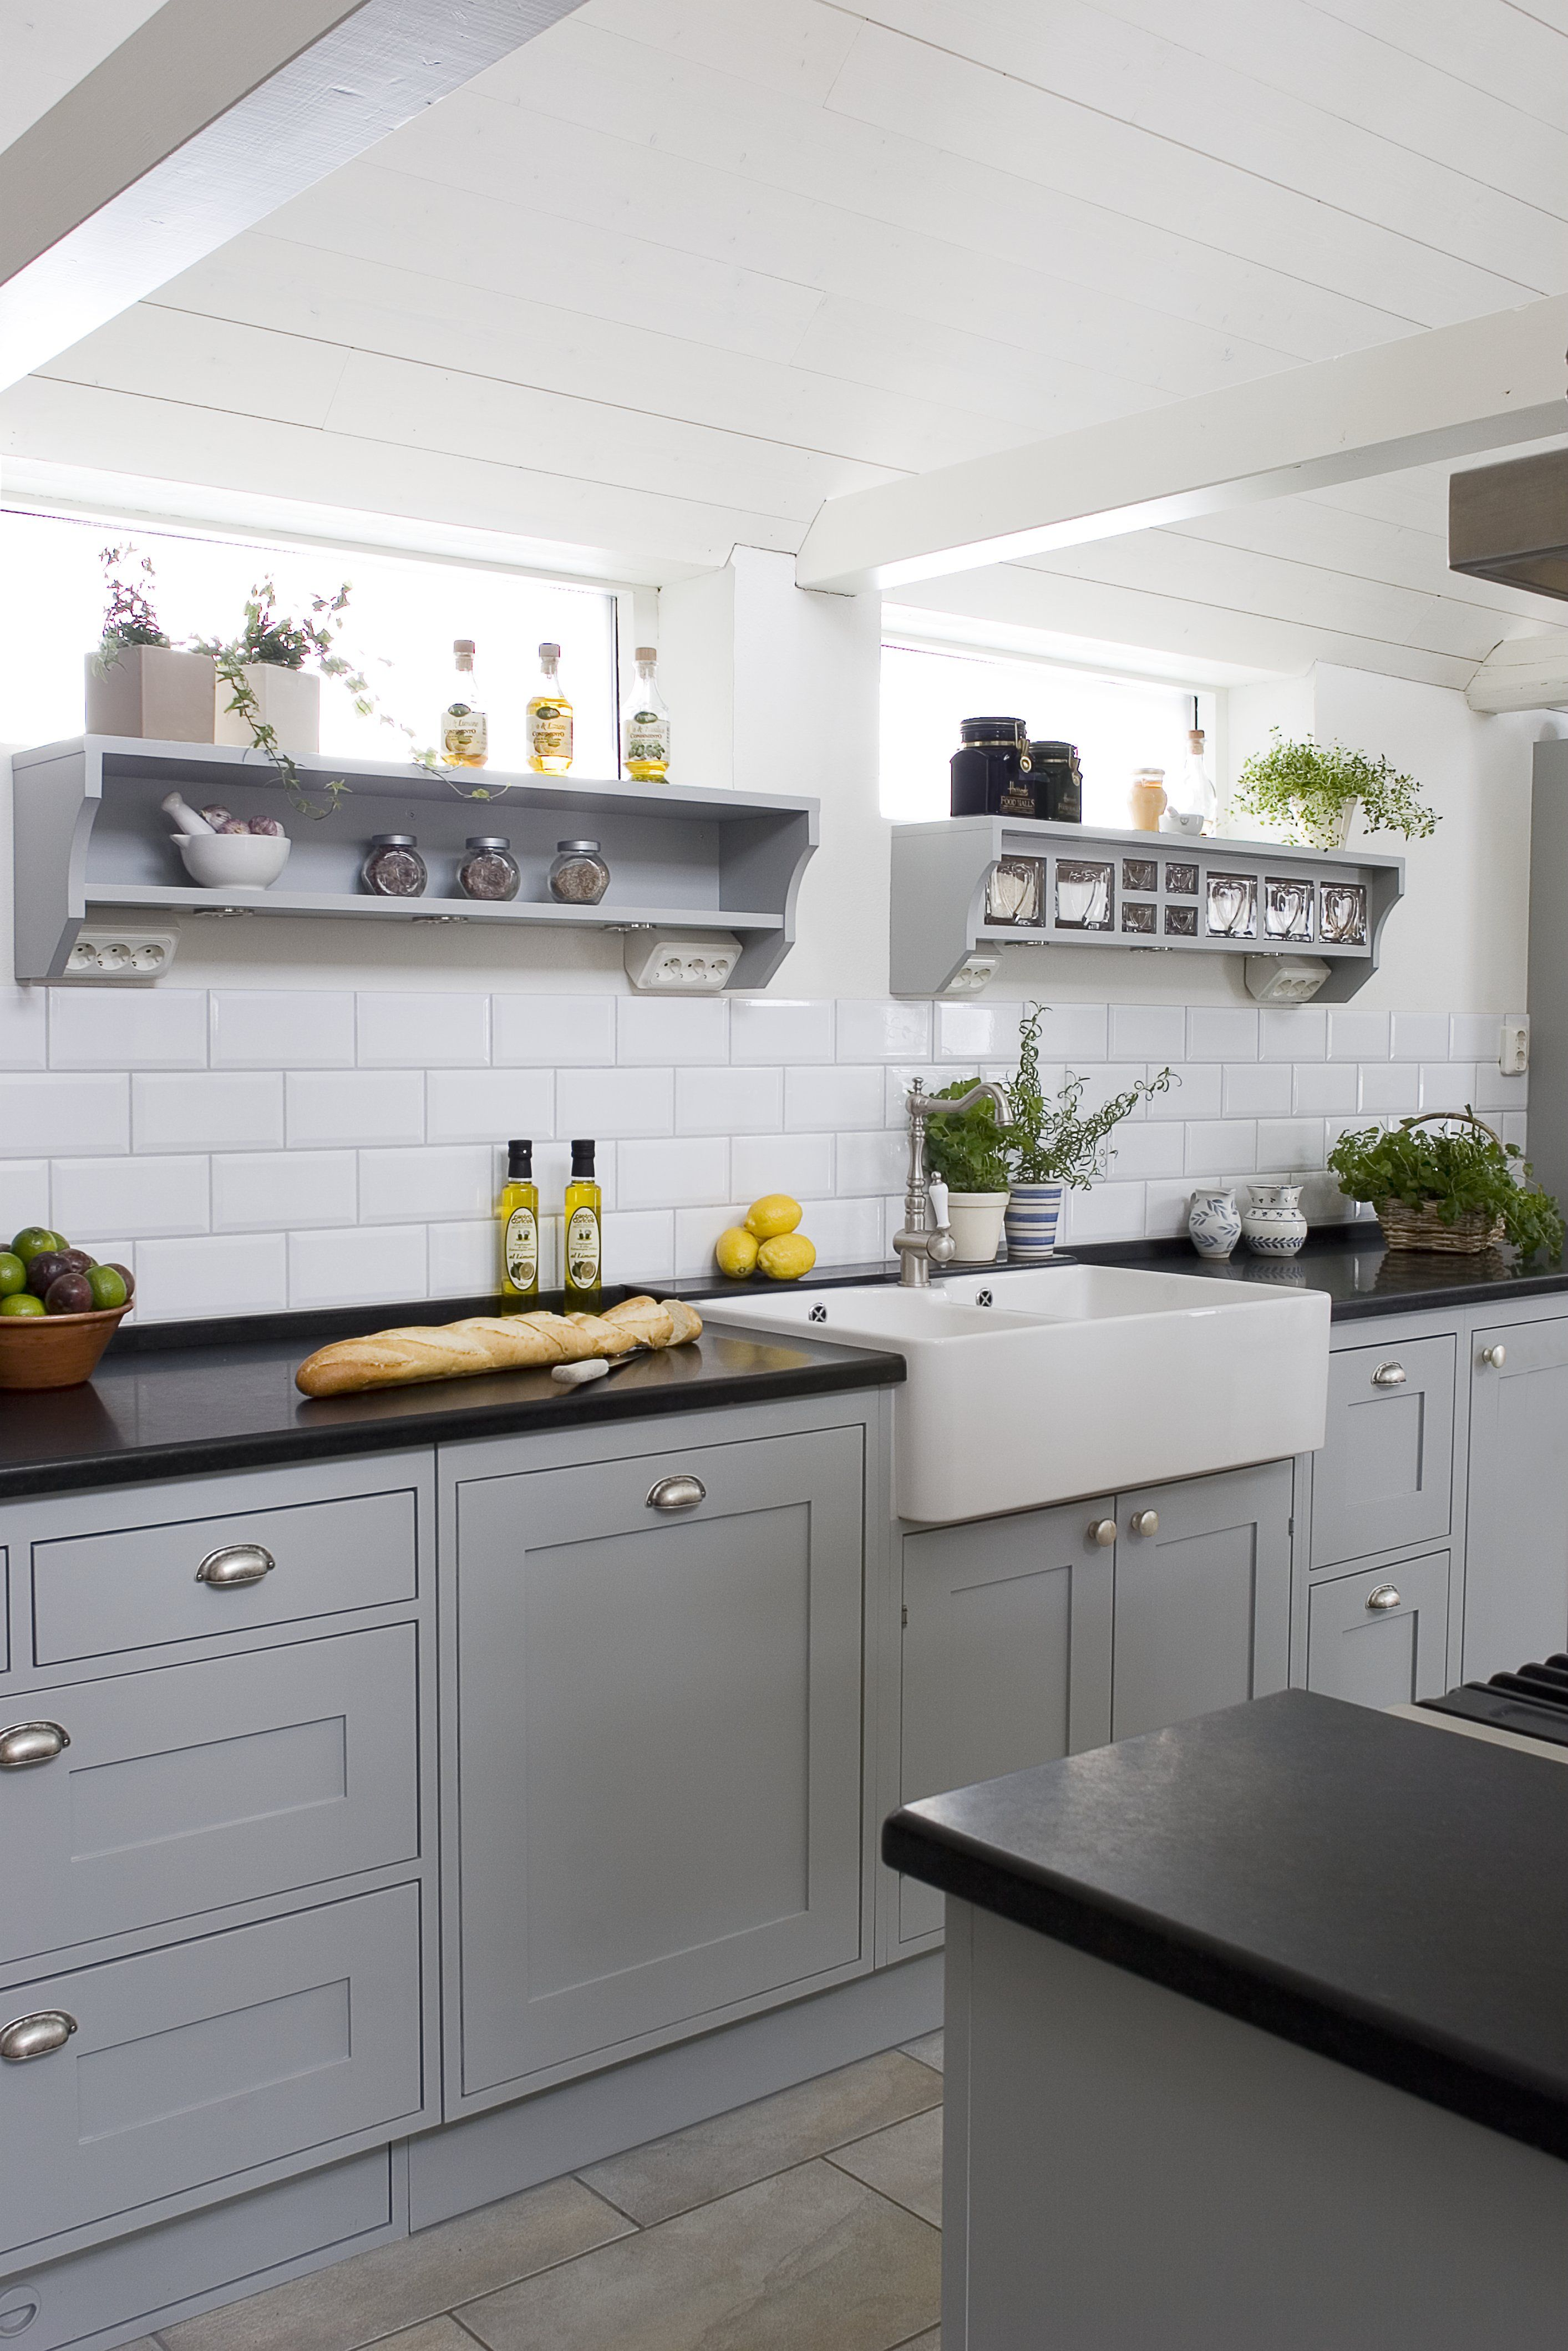 Swedish hand painted kitchen in grey with white tiles, glass jars ...